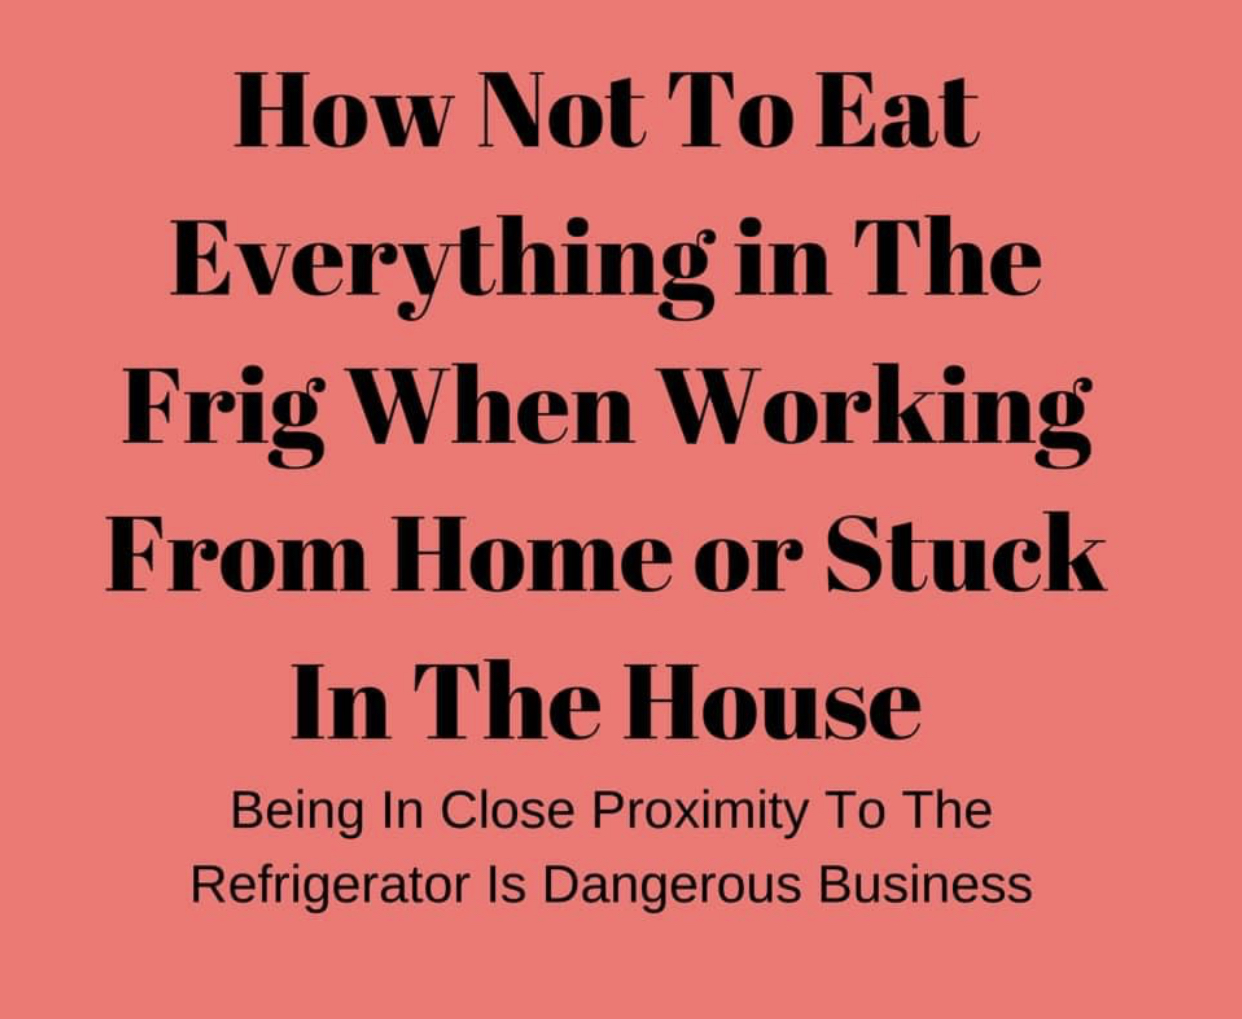 Being in Close Proximity To The Refrigerator is Dangerous Businesses